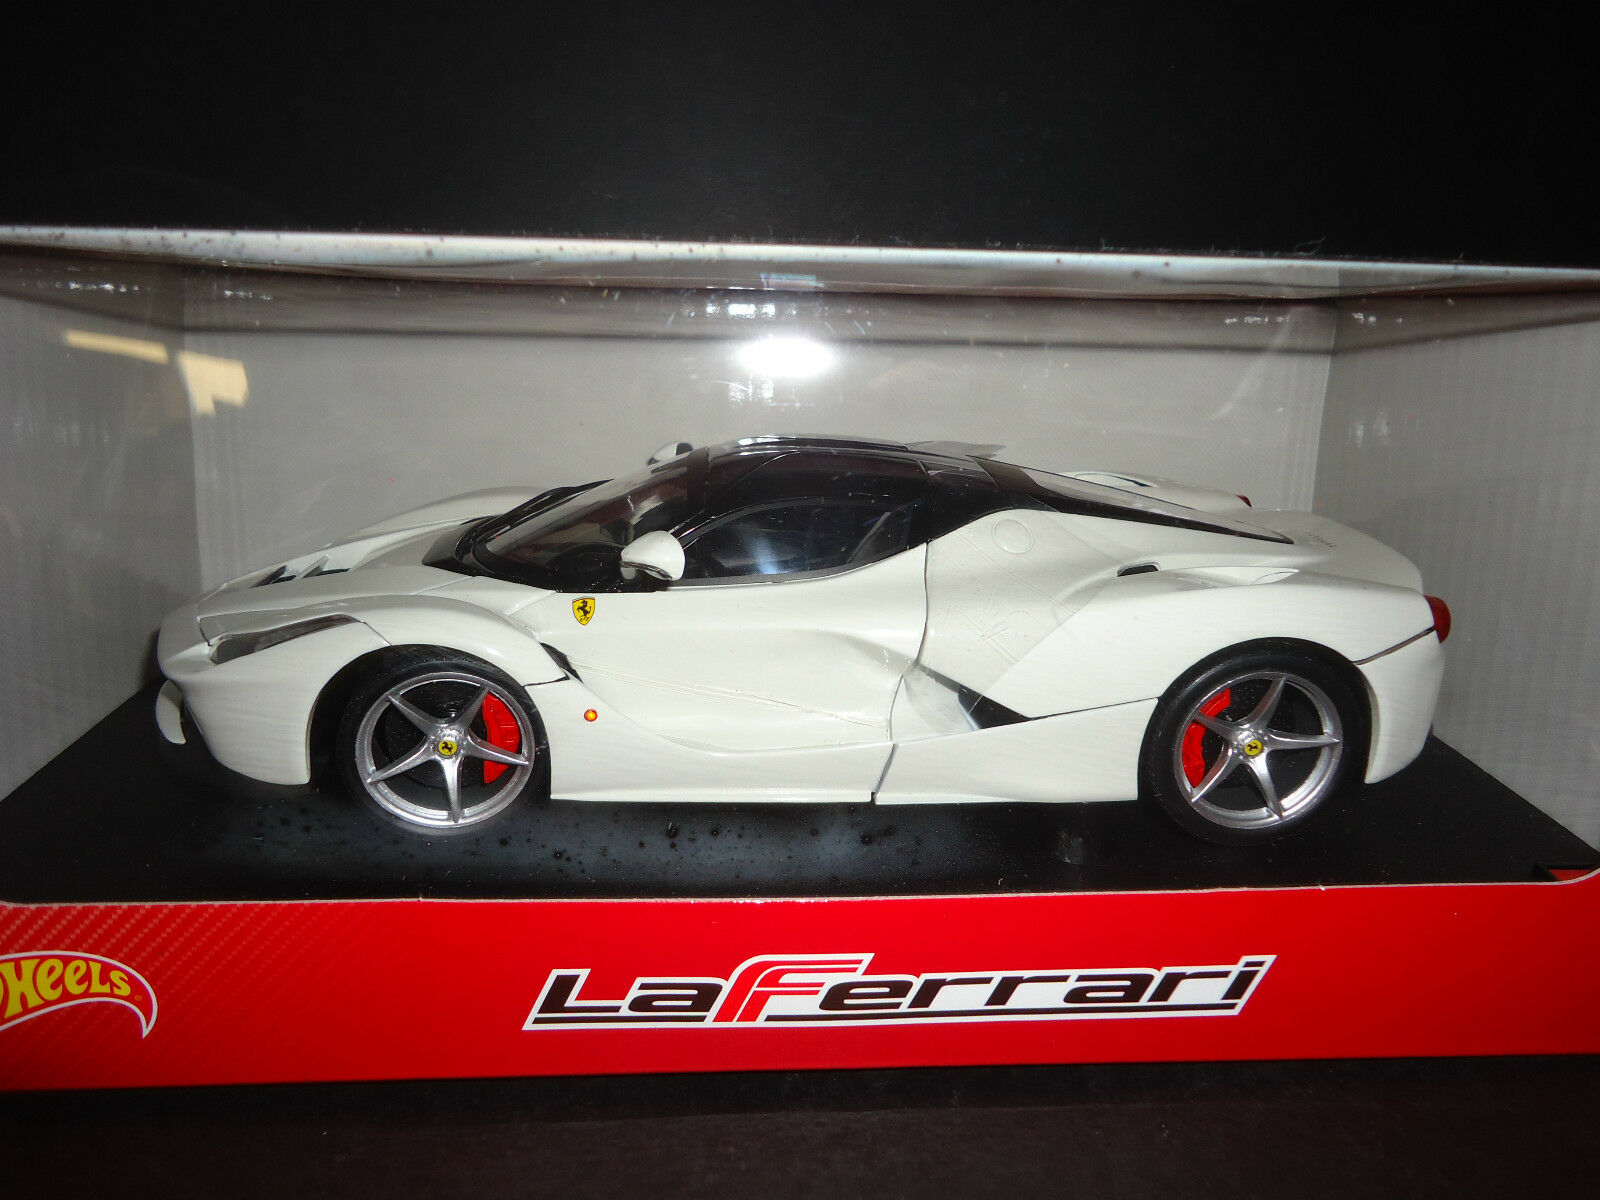 Hot Wheels Ferrari Laferrari 2013 Blanc BLY54 1 18